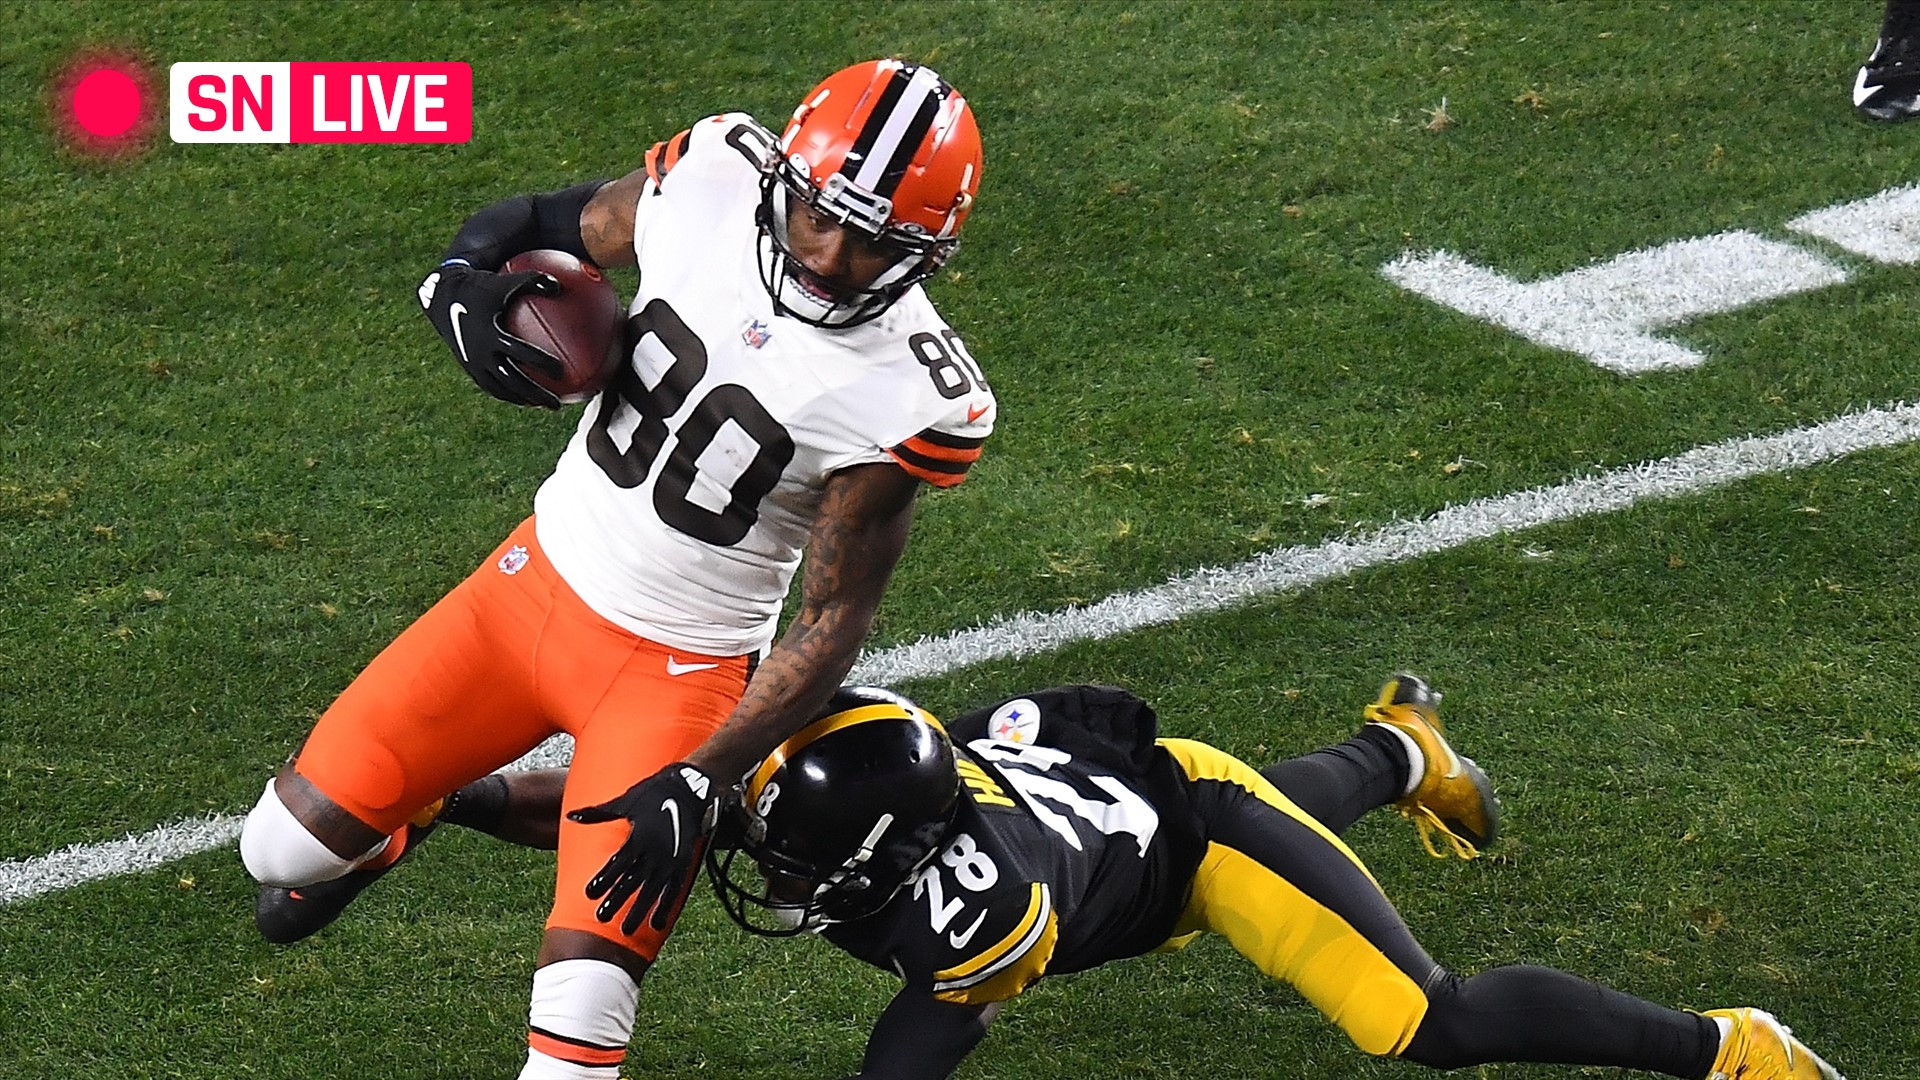 Steelers vs. Browns live score, updates, highlights from NFL wild-card playoff game